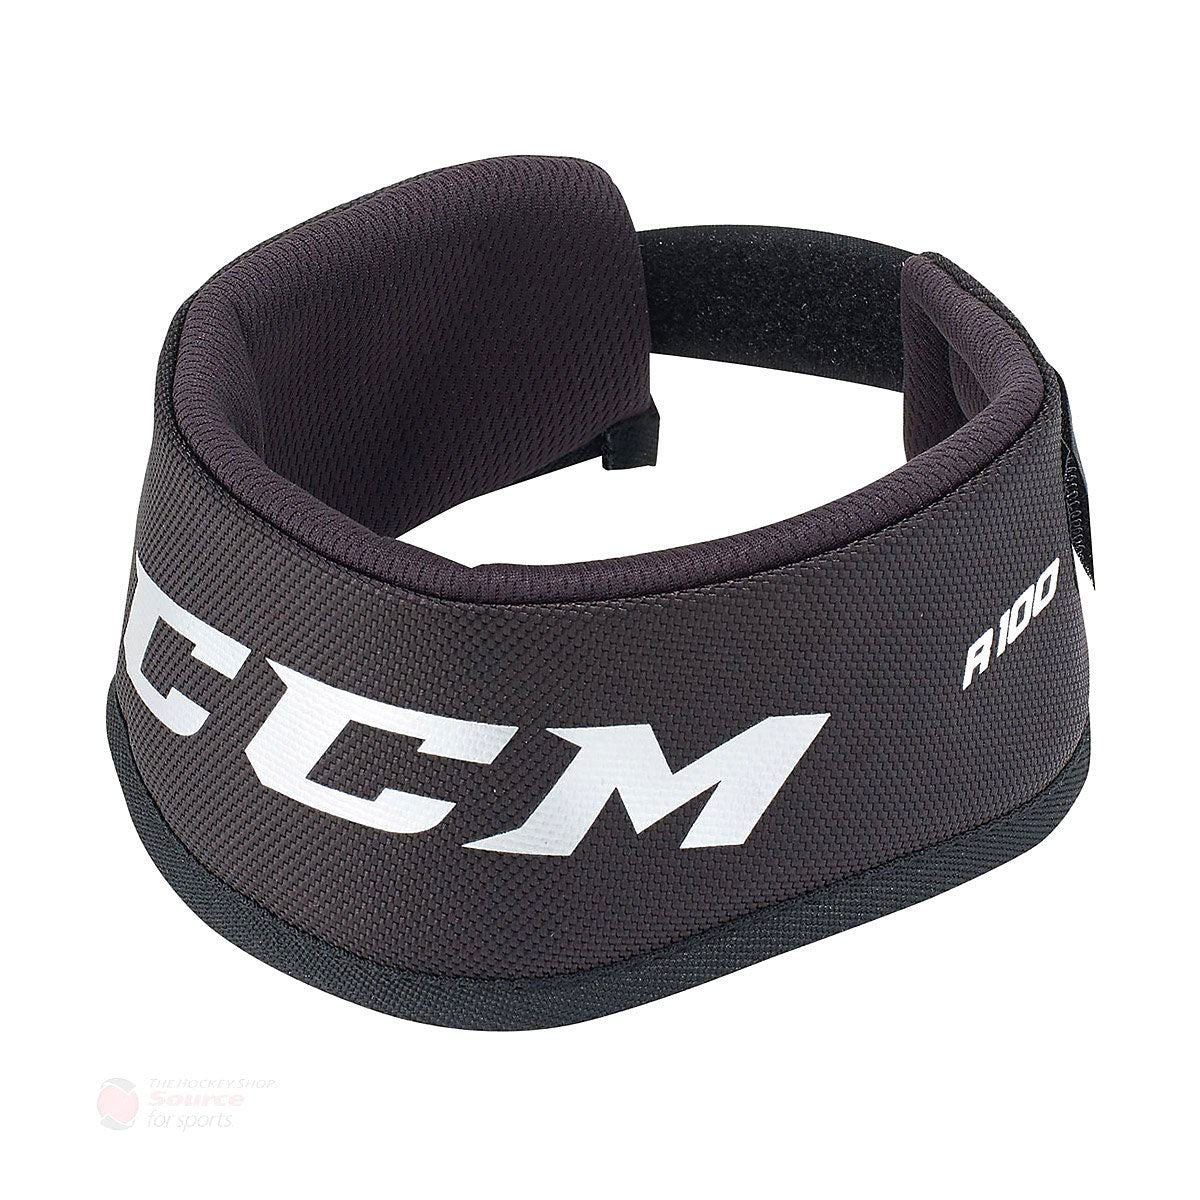 CCM RBZ 100 Junior Neck Guard